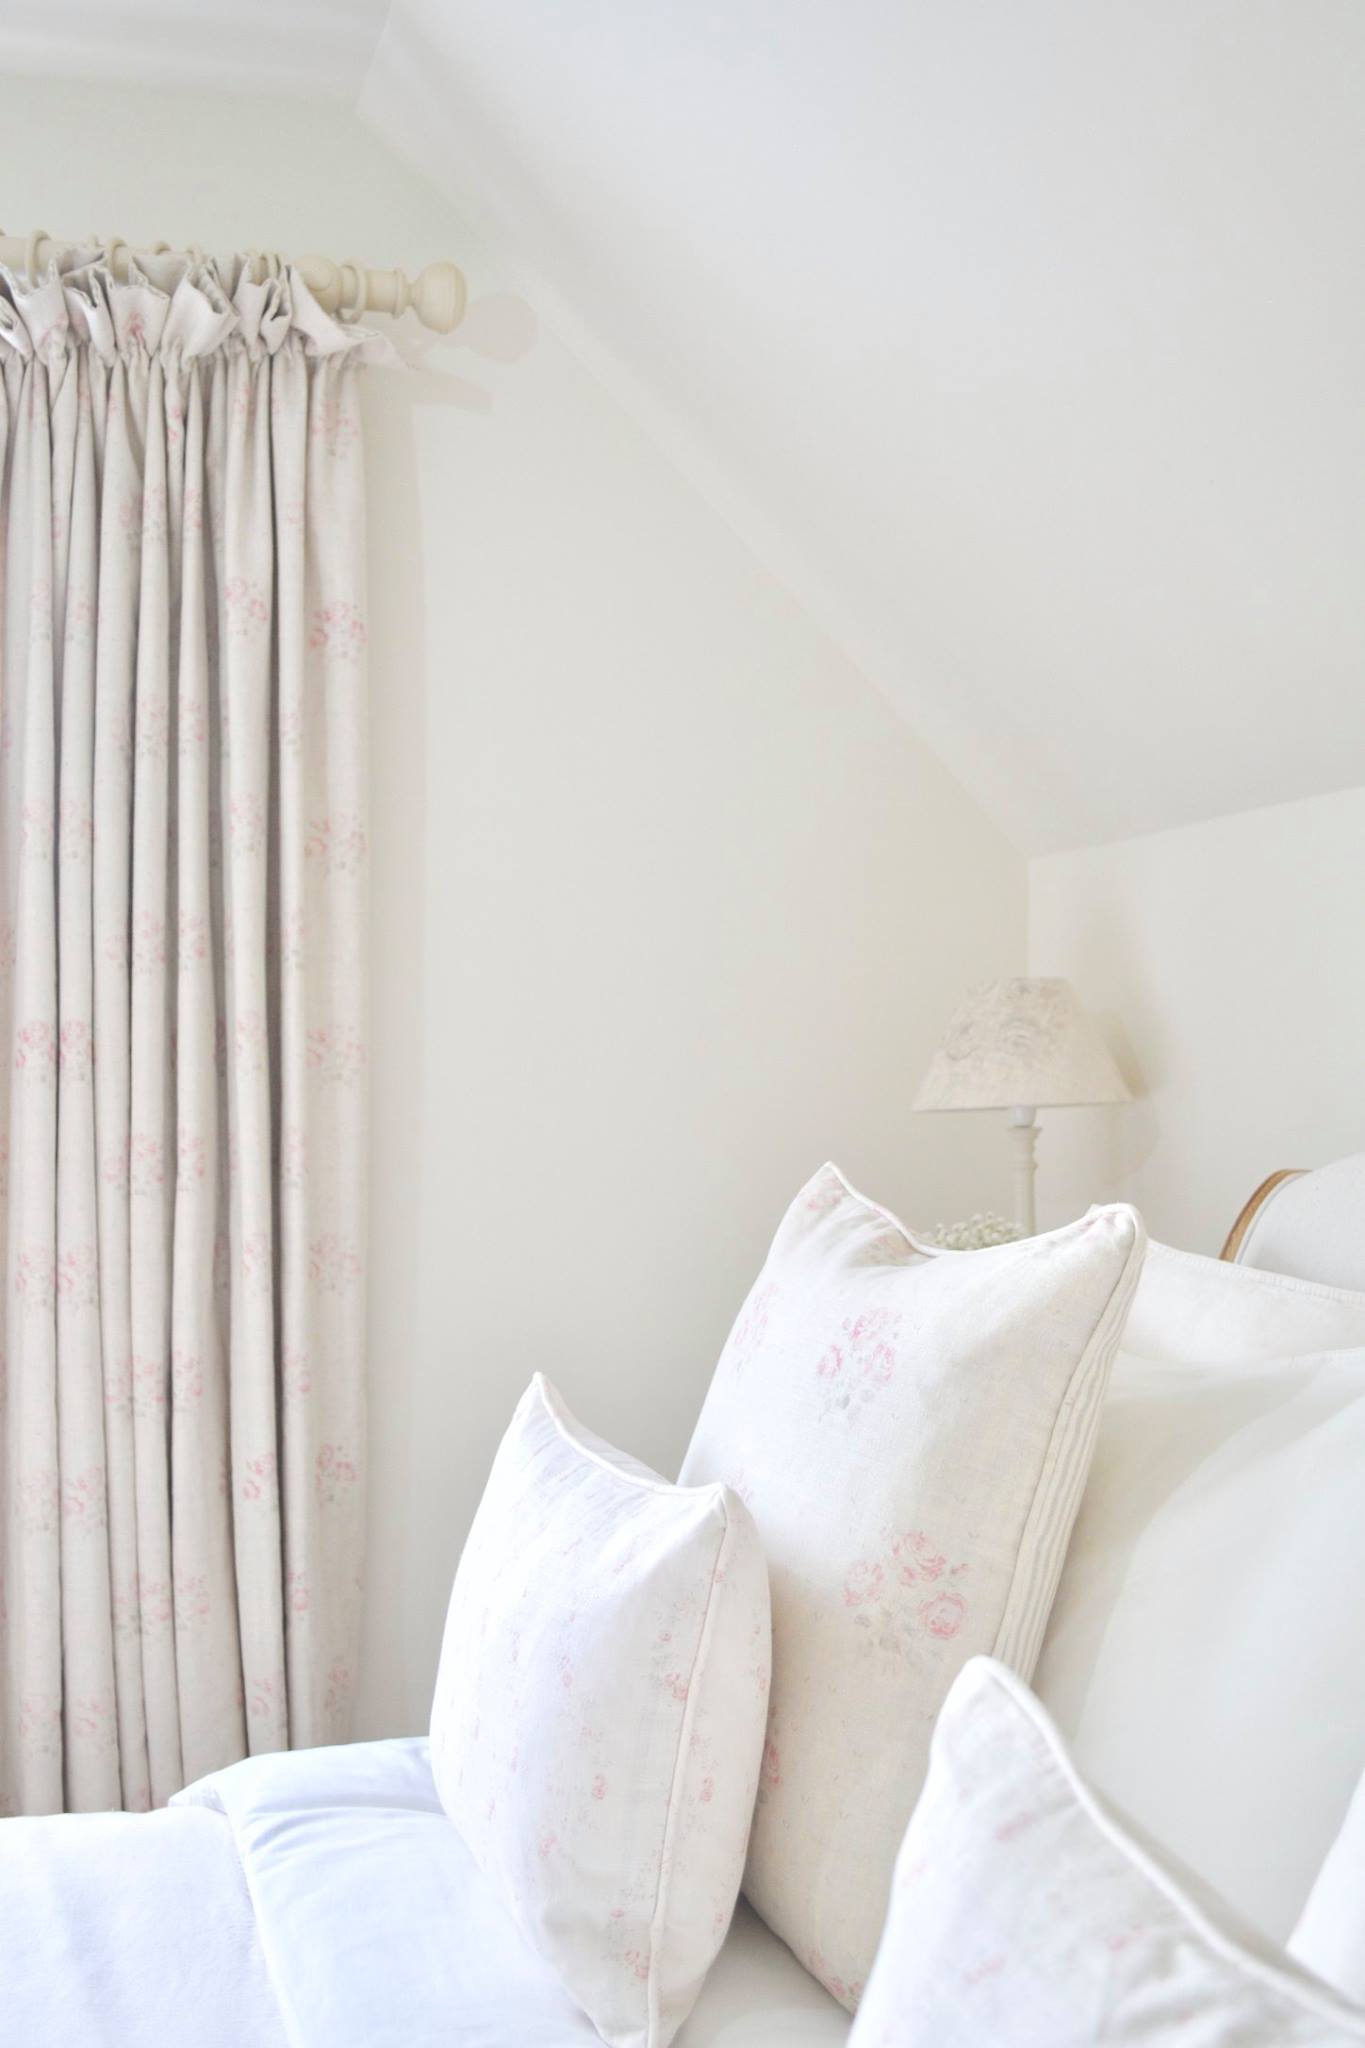 Cottage Bedroom with faded floral linens designed by www.hlinteriors.co.uk10.jpg